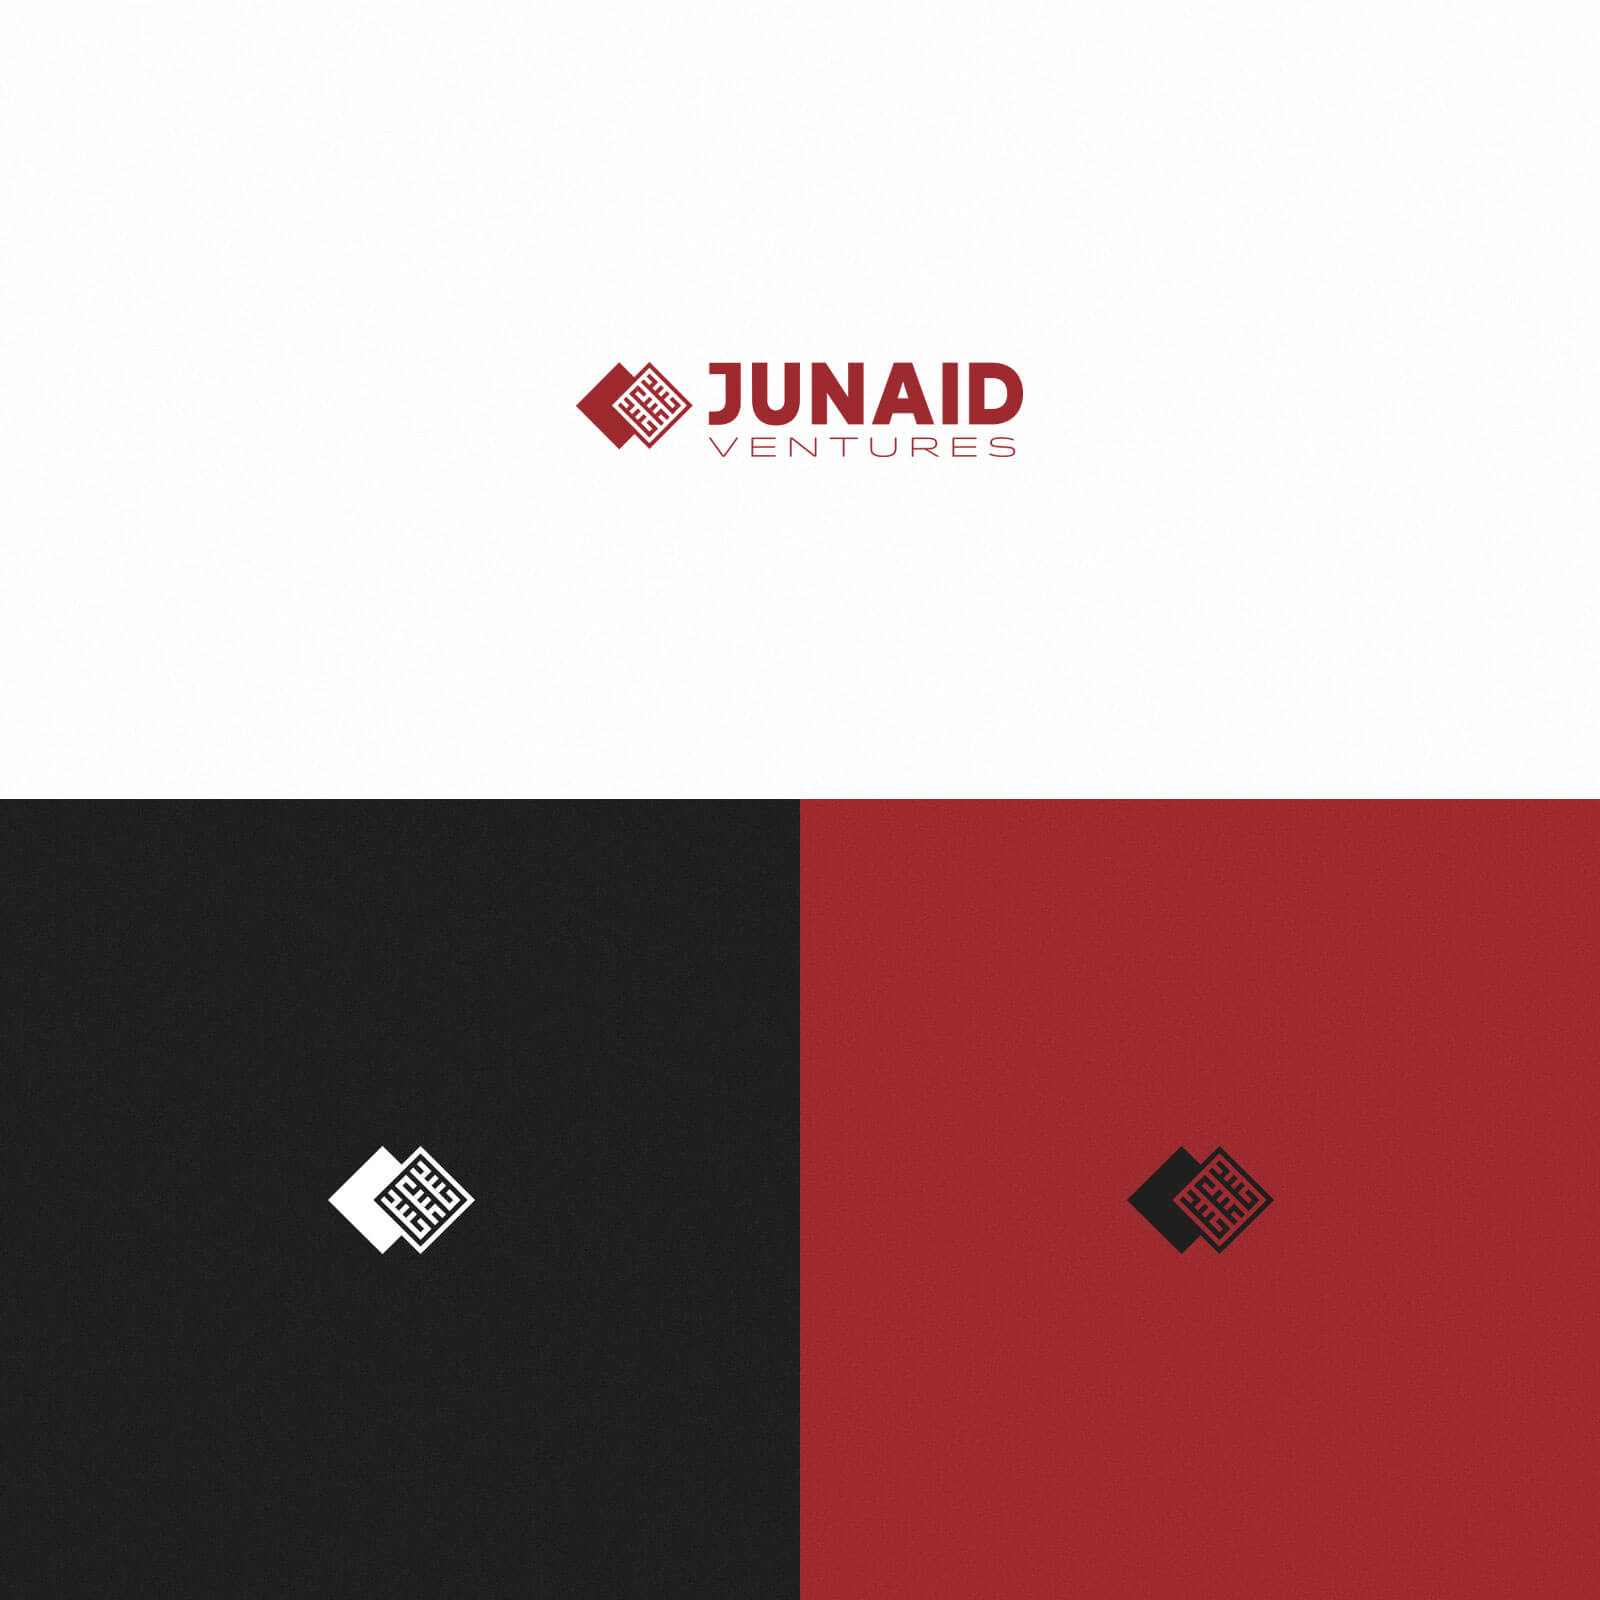 Junaid Ventures – Logo, Various Colors